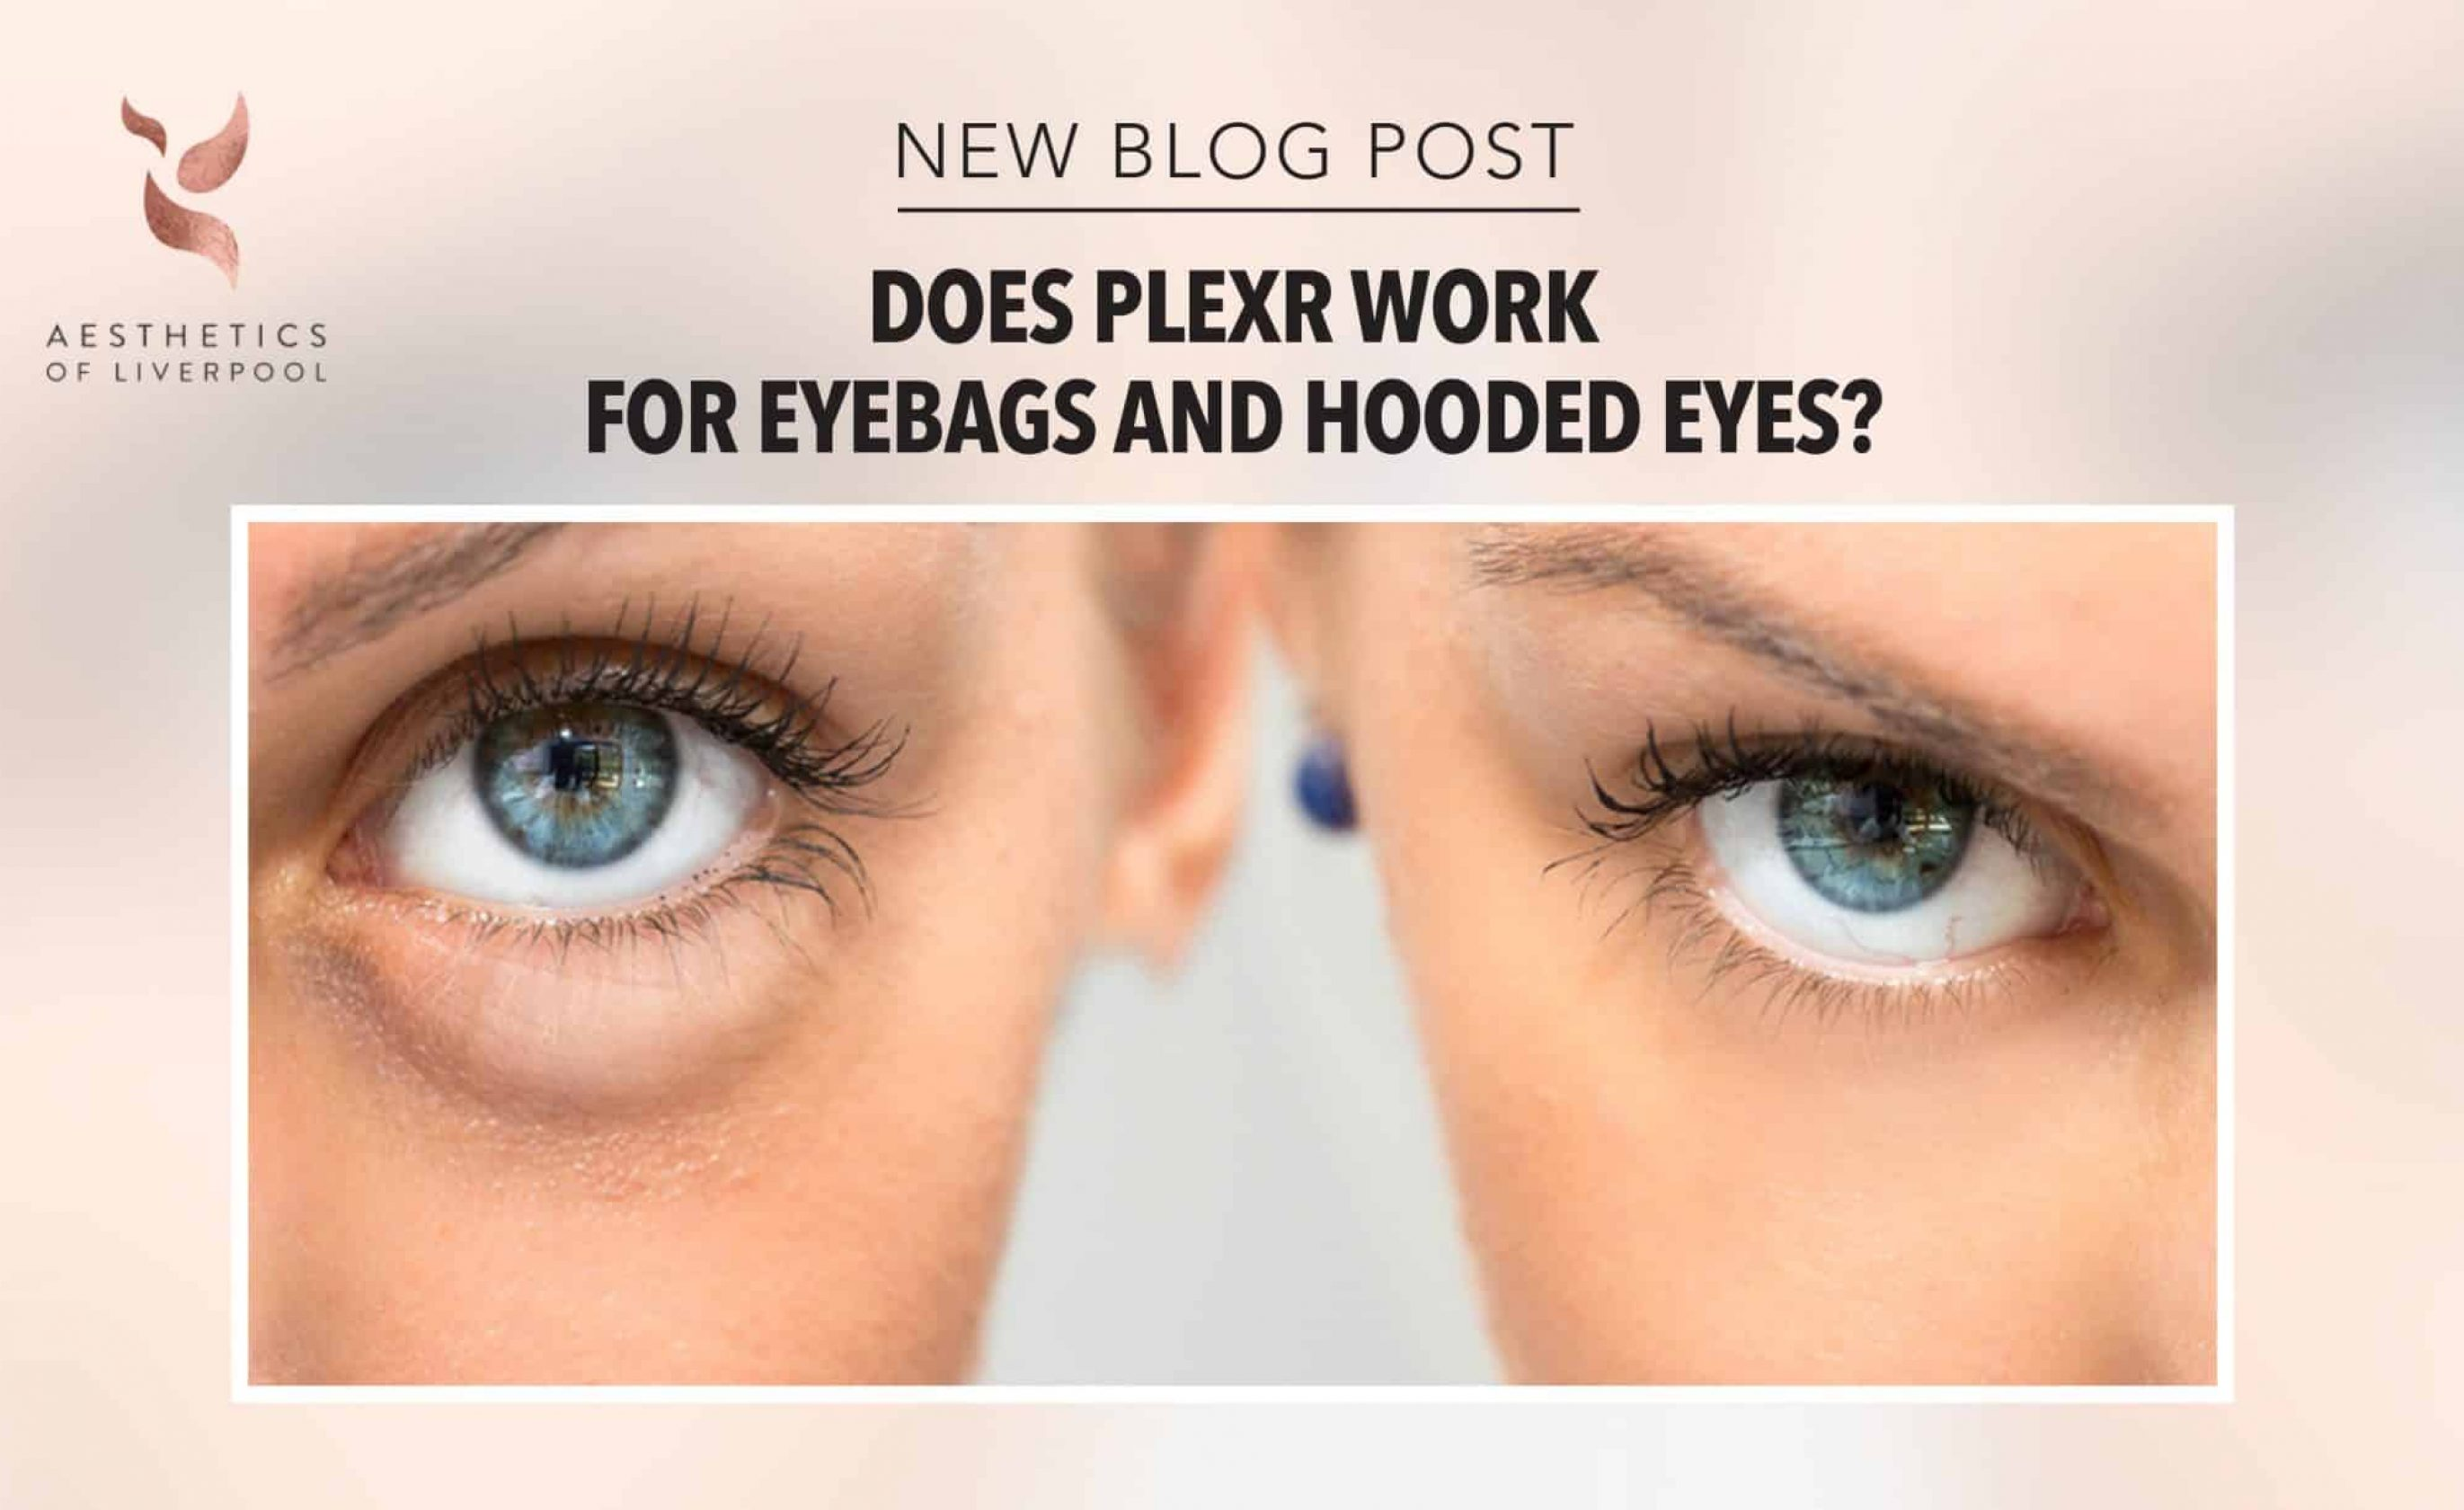 Does Plexr Work for Eyebags and Hooded Eyes?